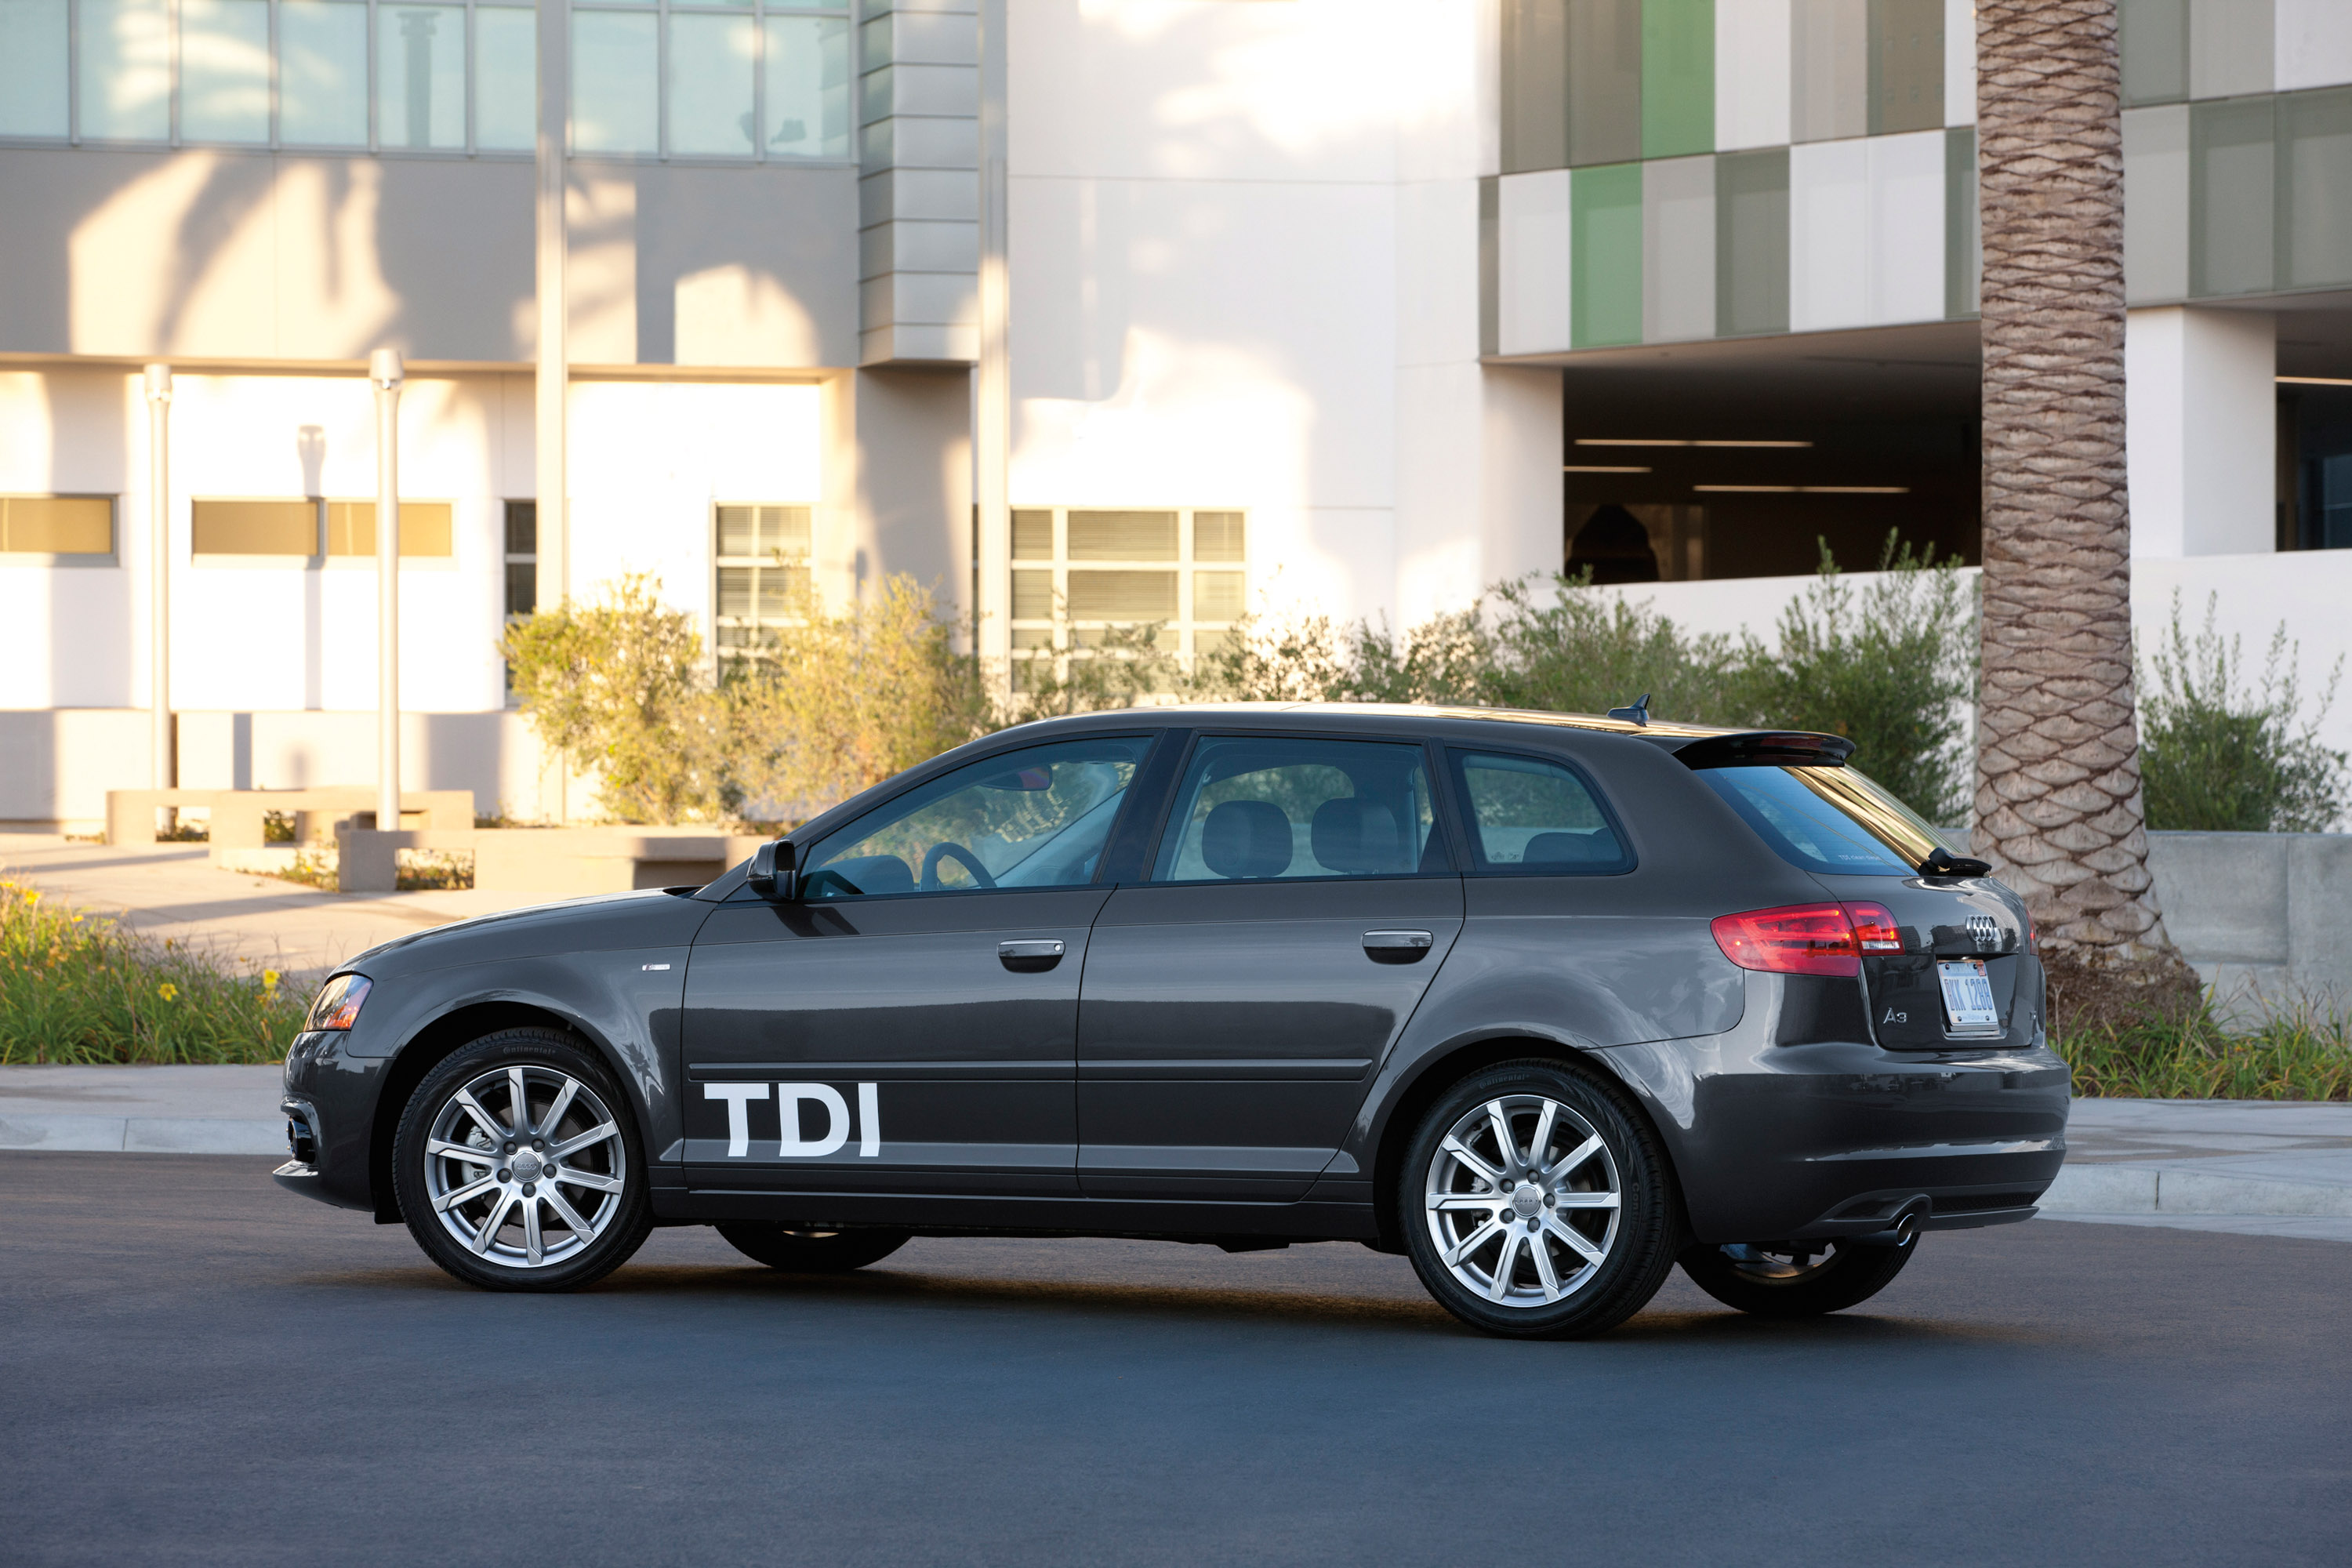 2012 audi a3 tdi clean diesel picture 65719. Black Bedroom Furniture Sets. Home Design Ideas